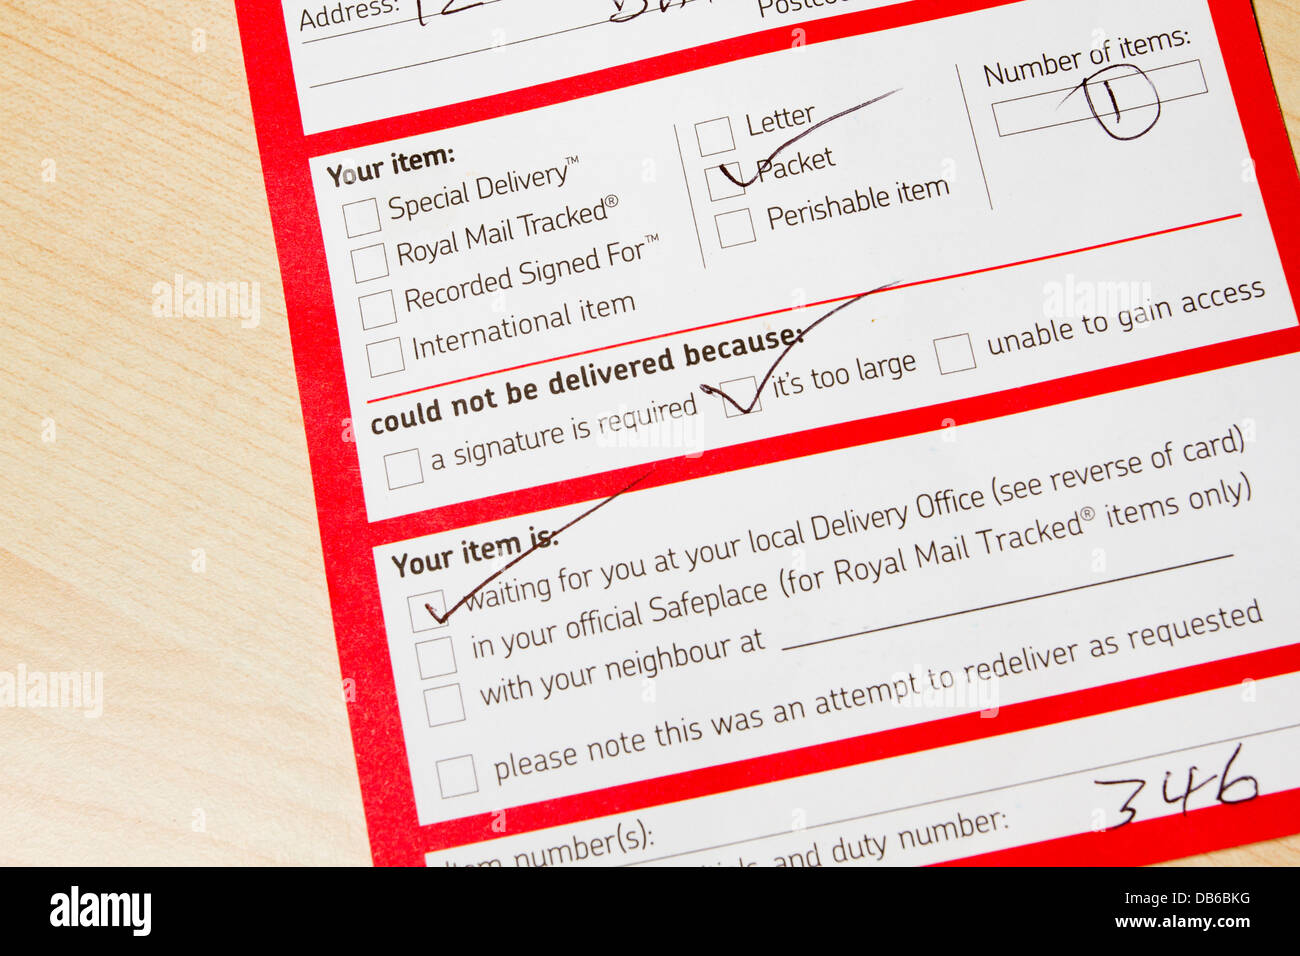 Royal Mail, while you were out missed delivery card/note, England, UK - Stock Image